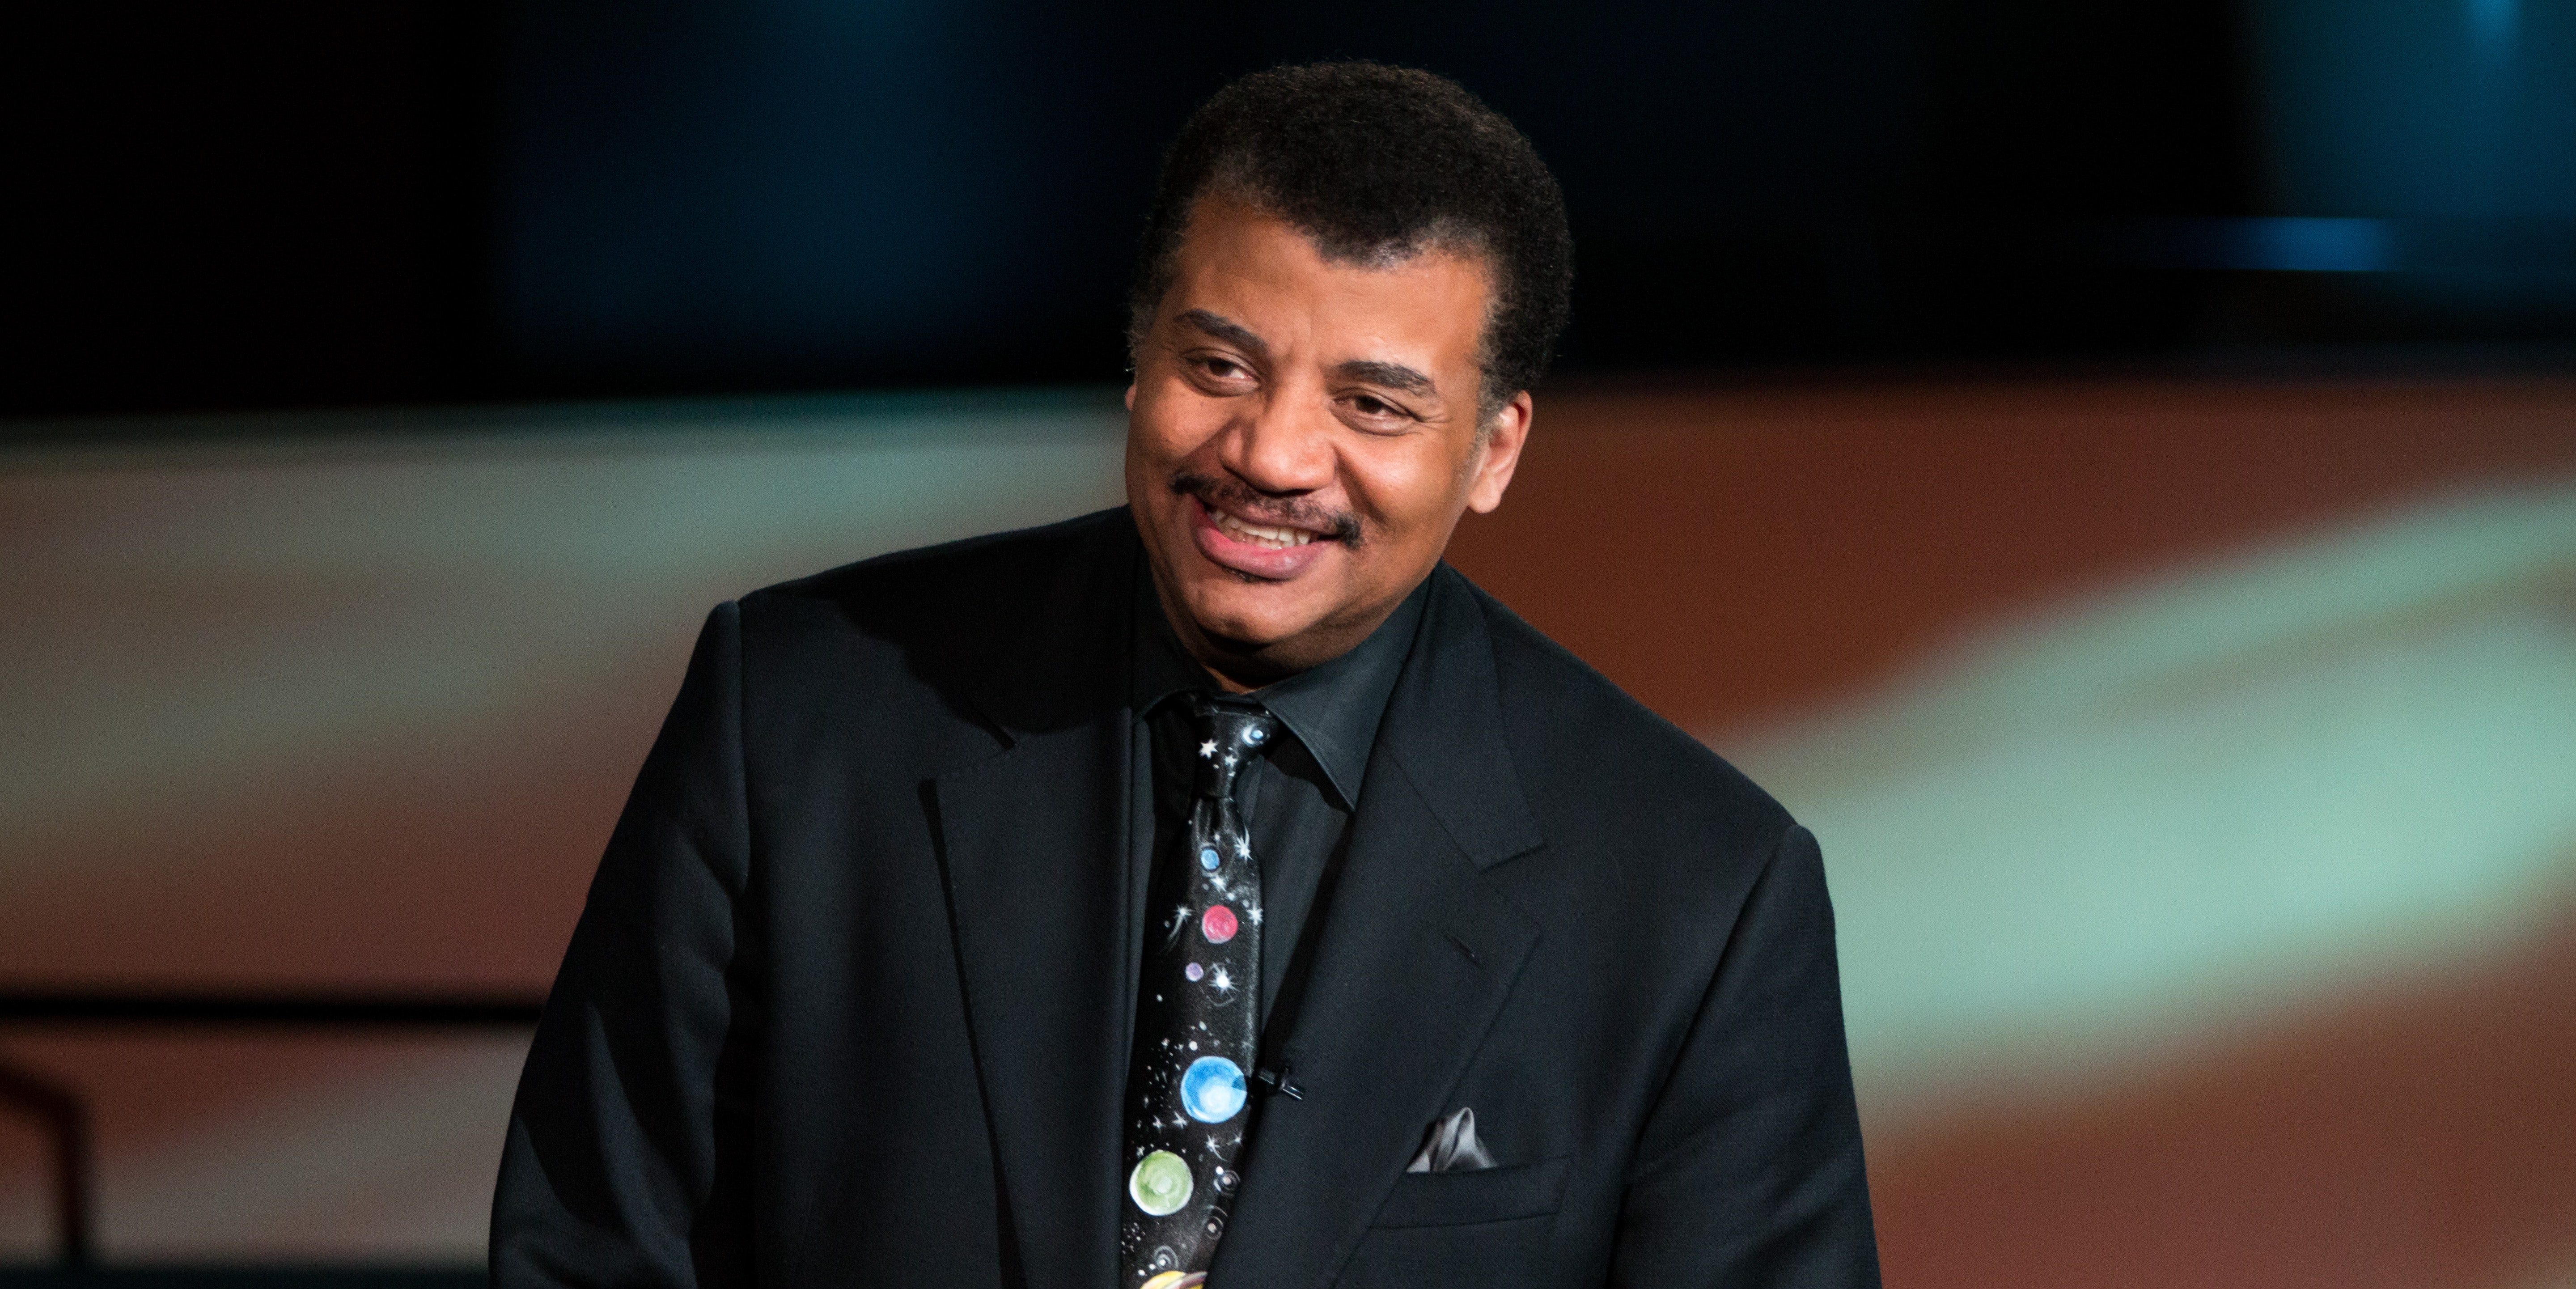 Neil deGrasse Tyson Finally Addresses Why His Tweets Are So Bad